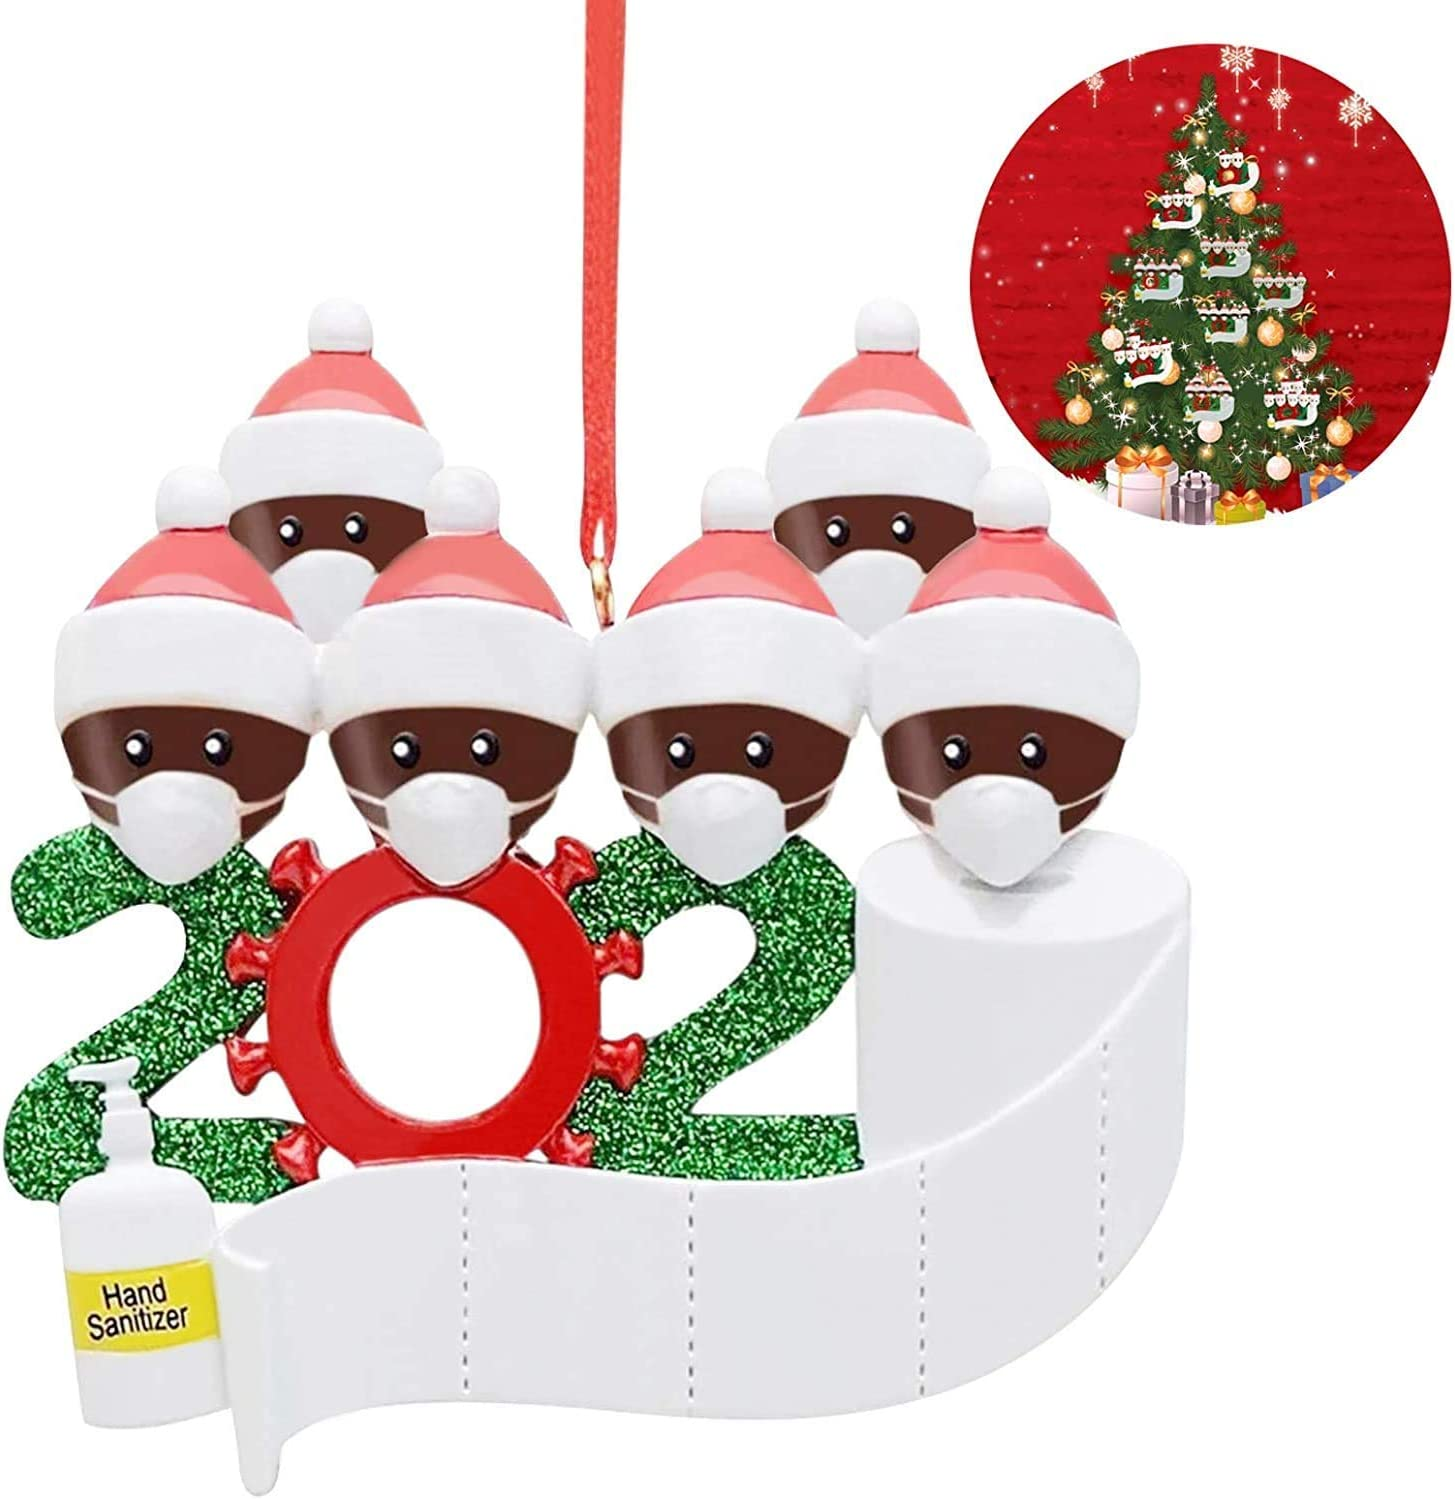 Family of 2 Personalized Family 2-7 Names Christmas Tree Decorations with Face Mask Christmas Ornaments 2020 Decorative Hanging Ornaments Hand Sanitizer and Toilet Paper